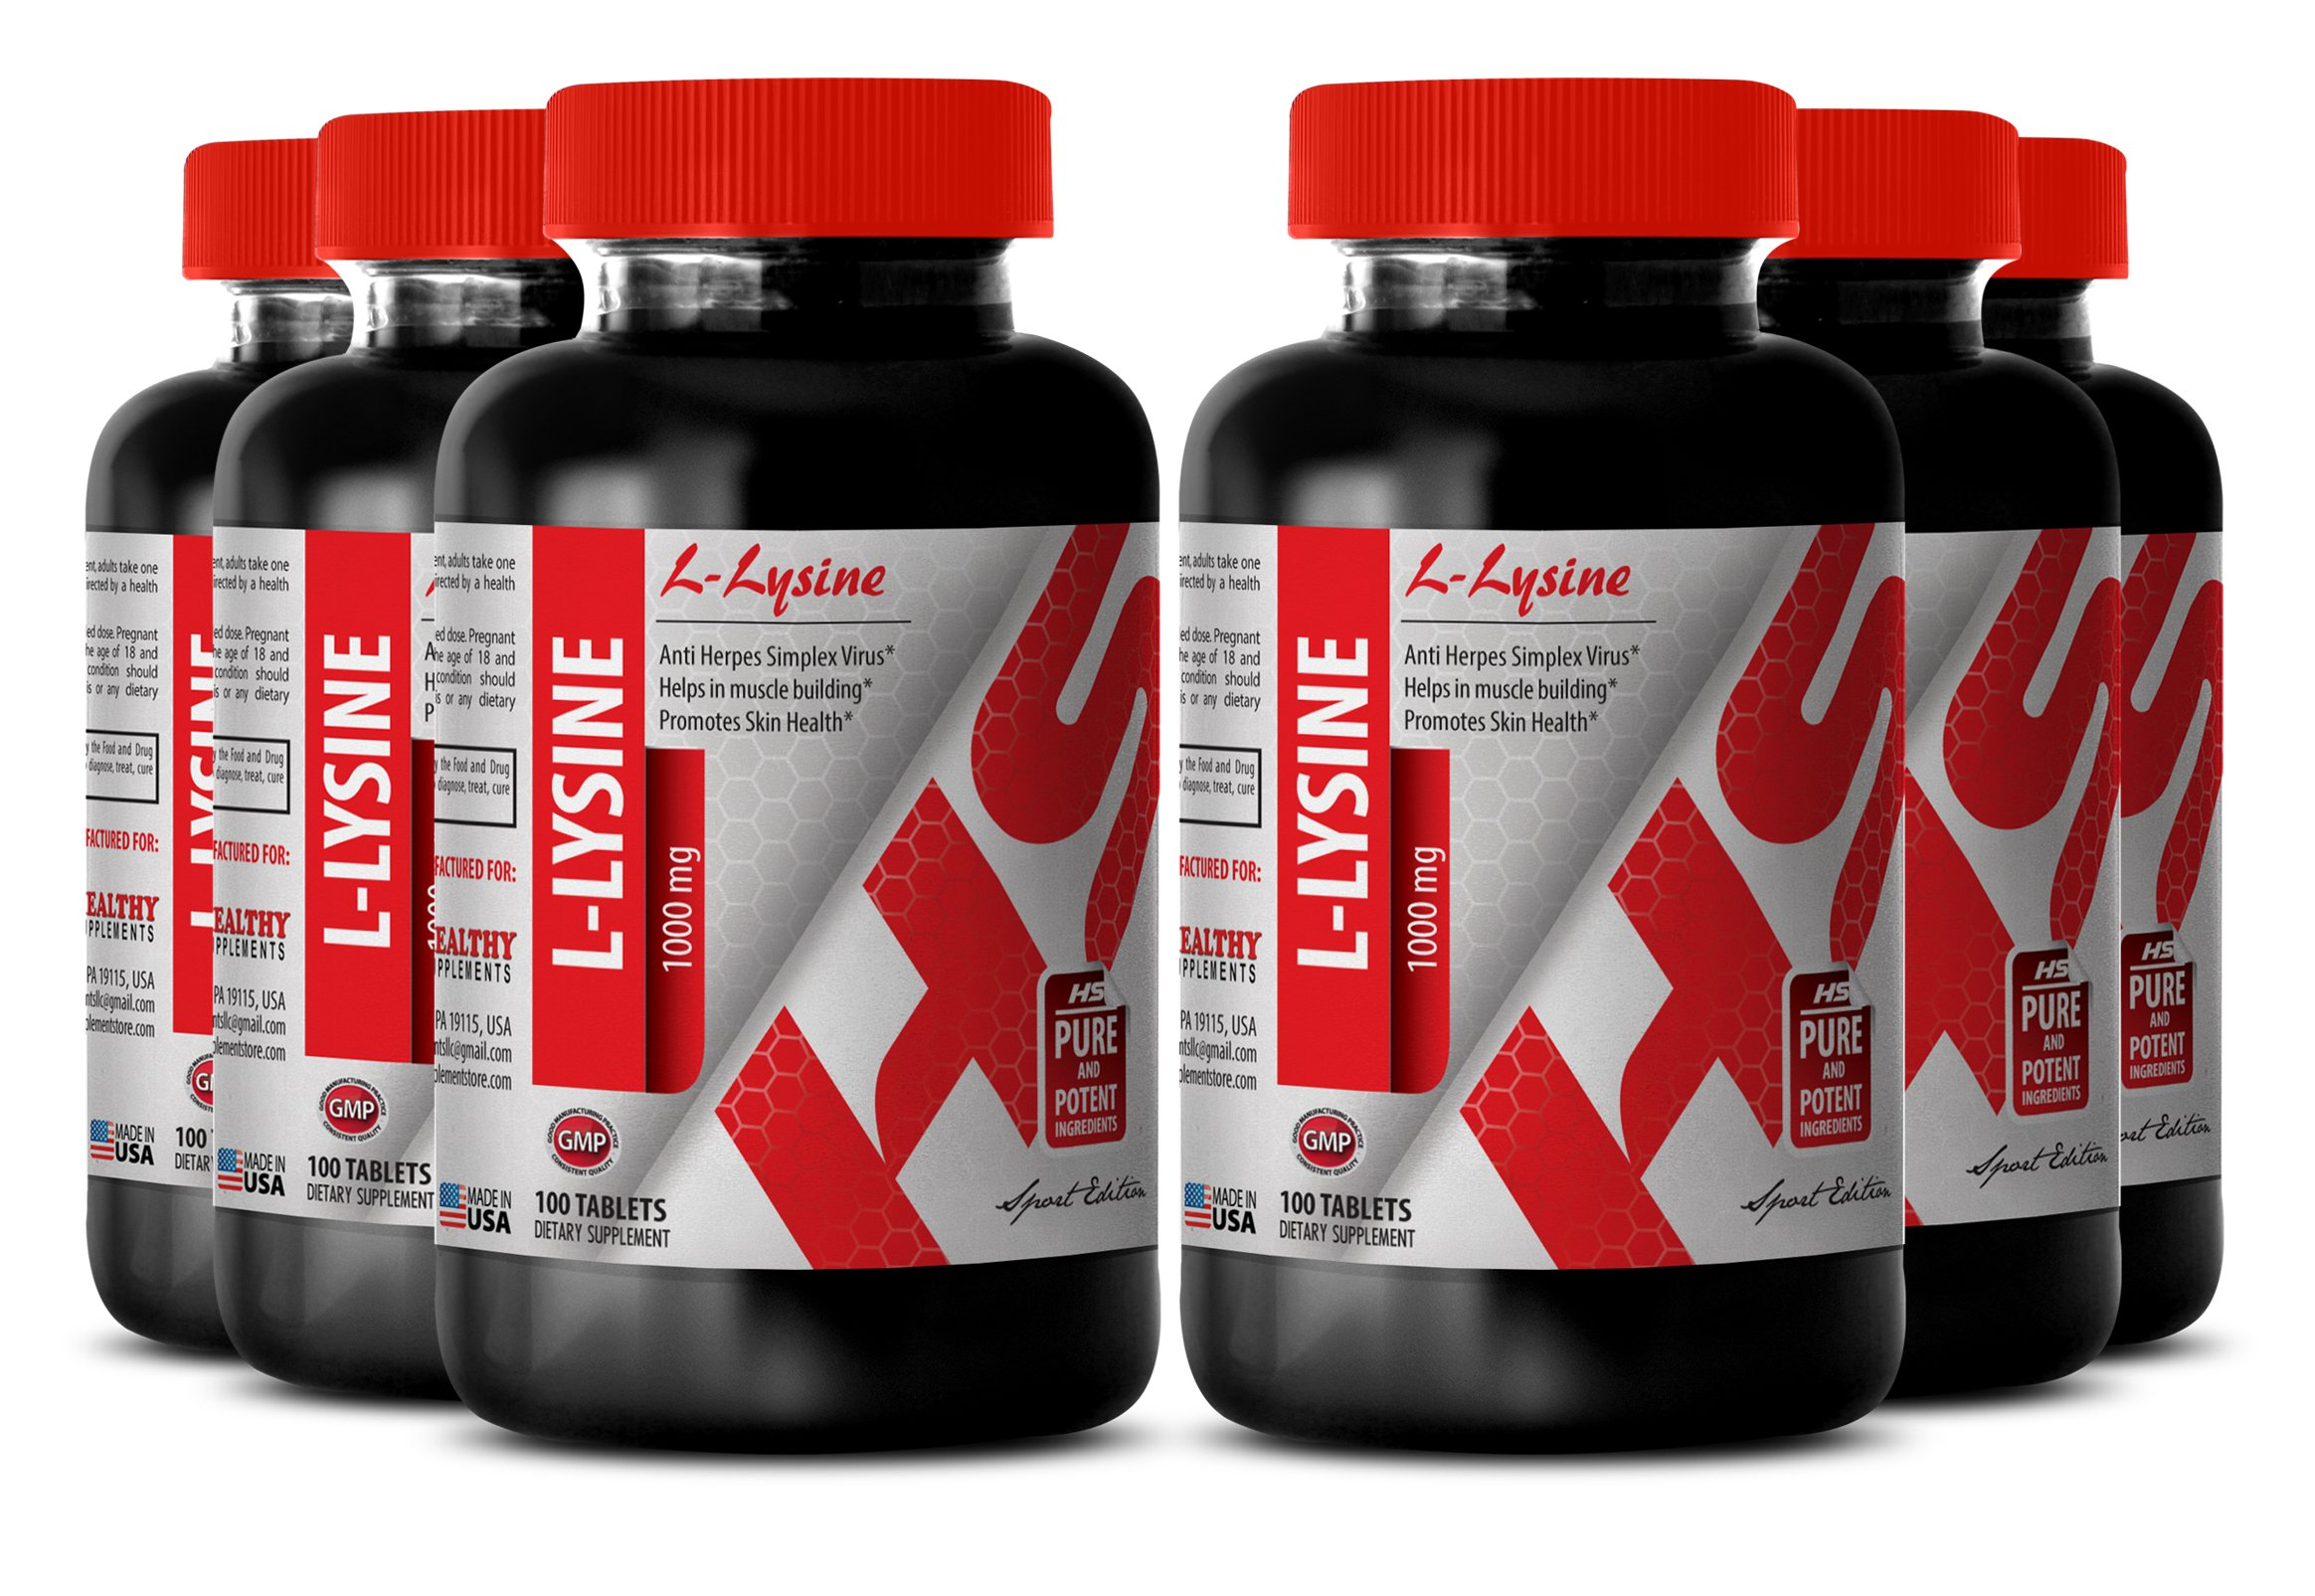 L-lysine - L-LYSINE SUPPLEMENT 1000 MG - boost focus (6 Bottles)